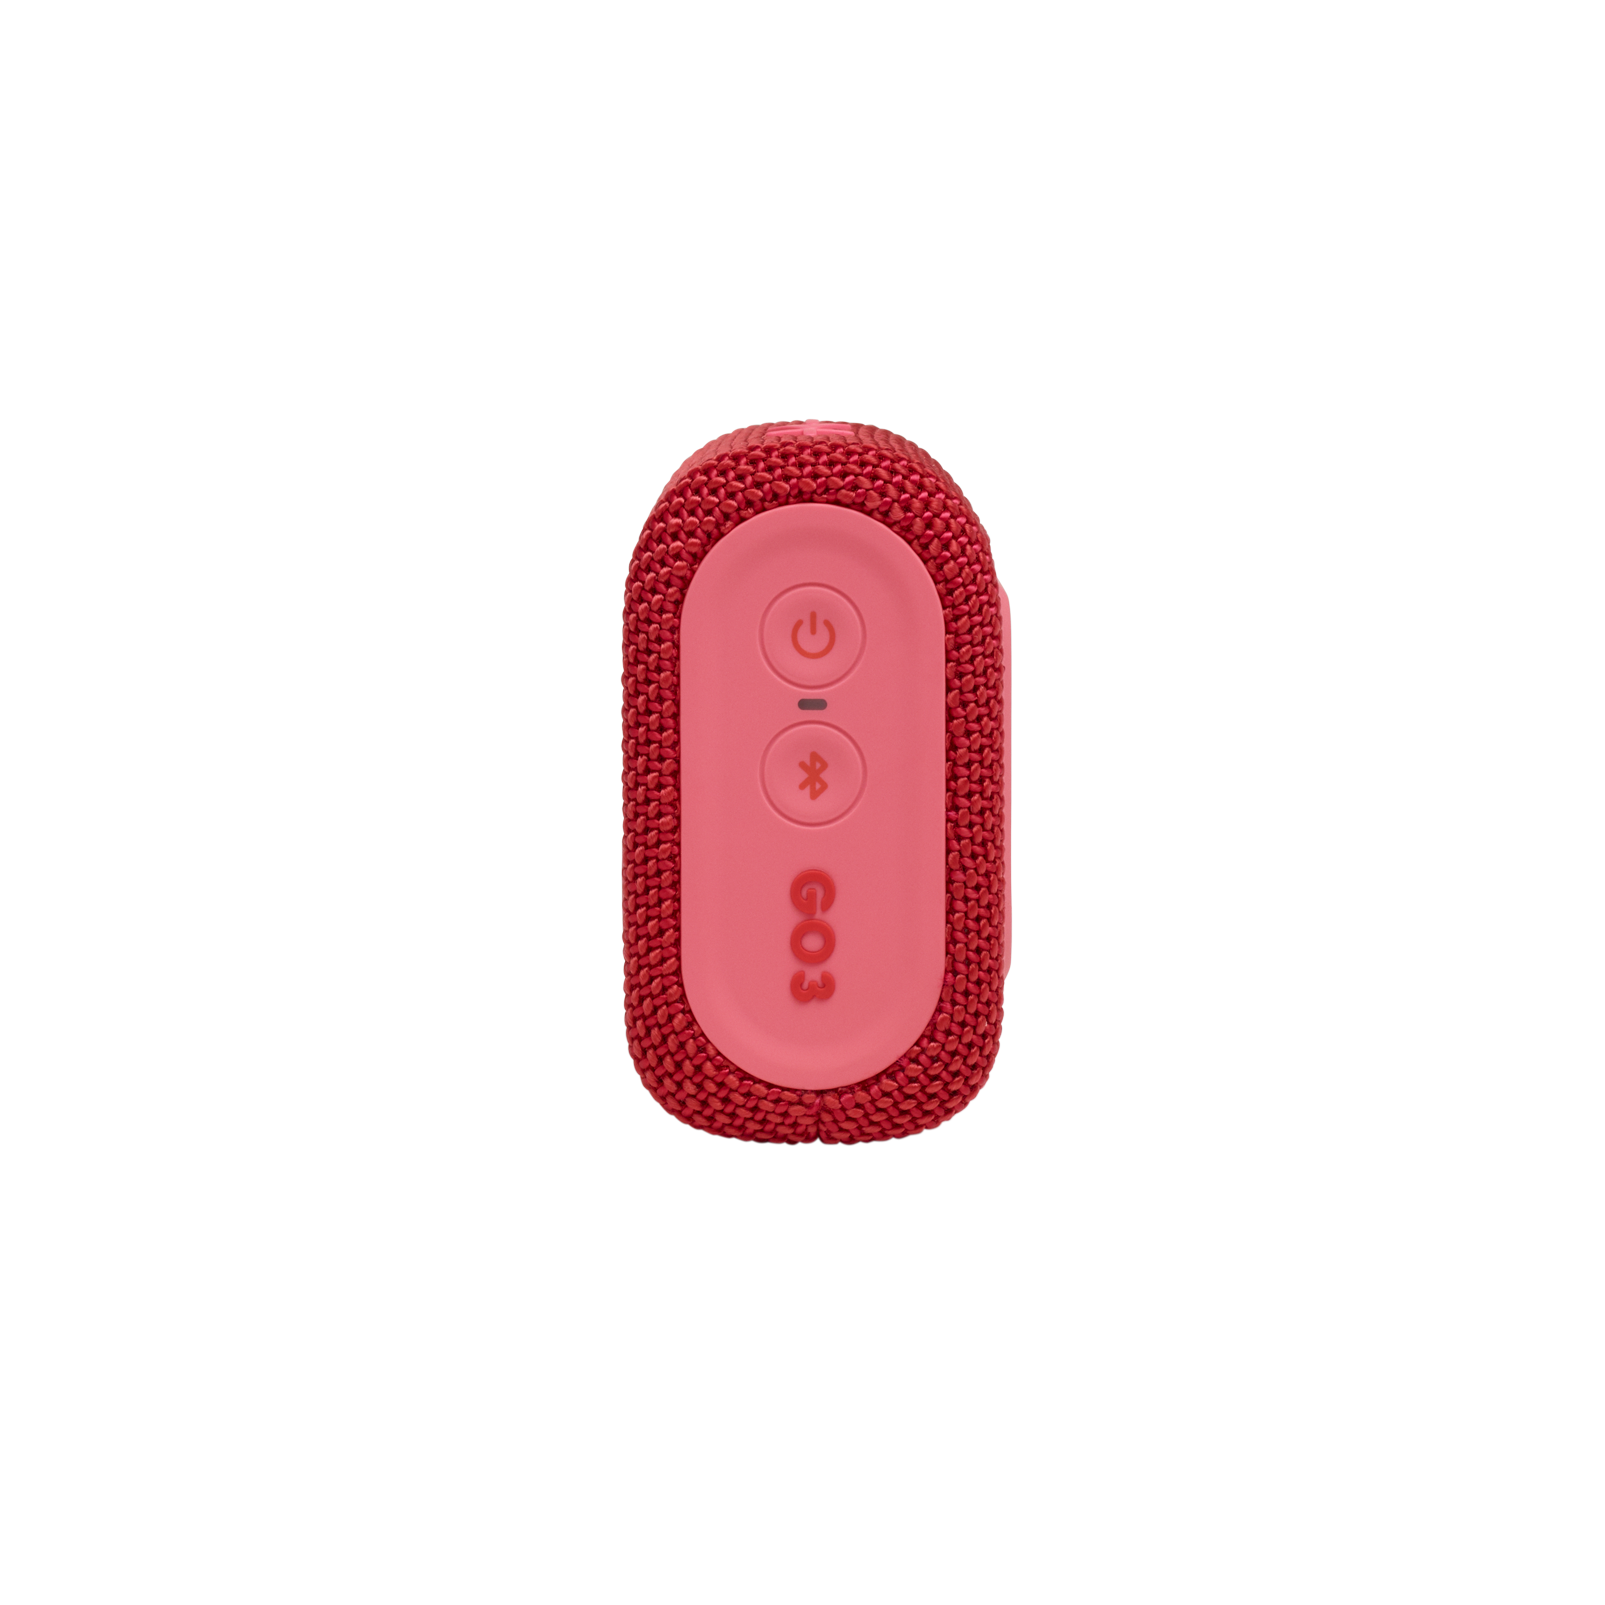 JBL GO 3 - Red - Portable Waterproof Speaker - Right